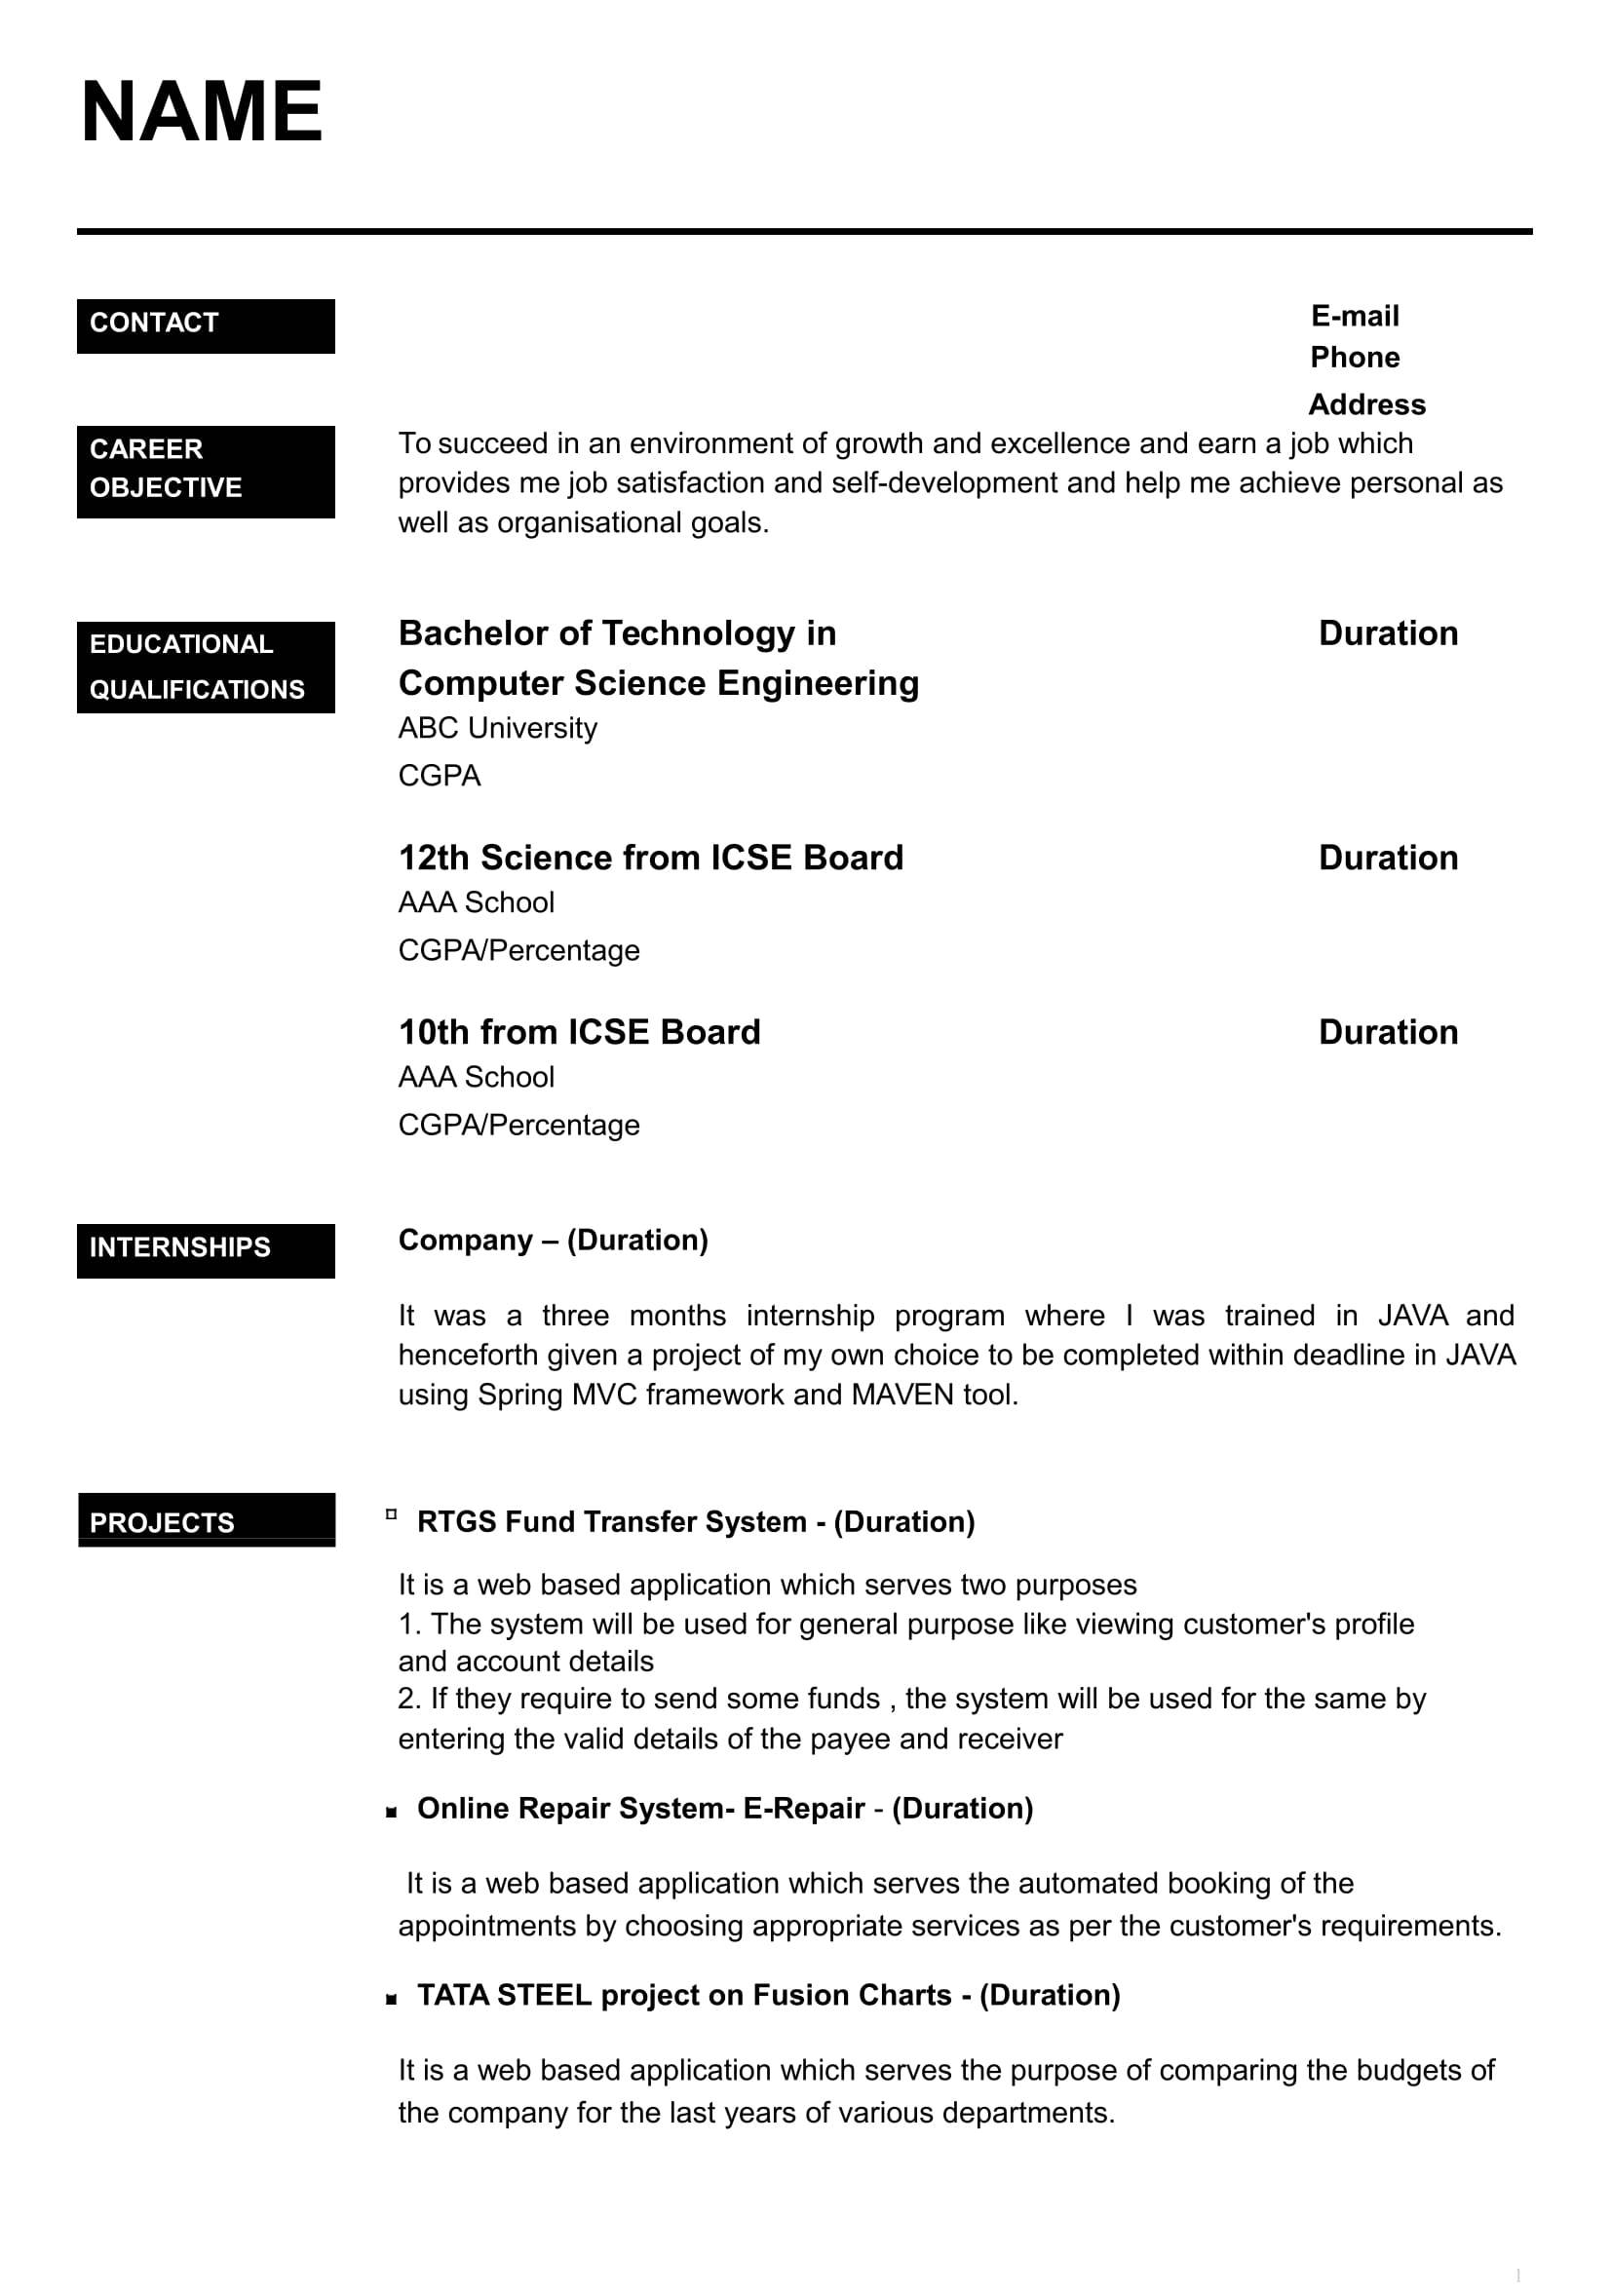 Resume Templates For Freshers Download